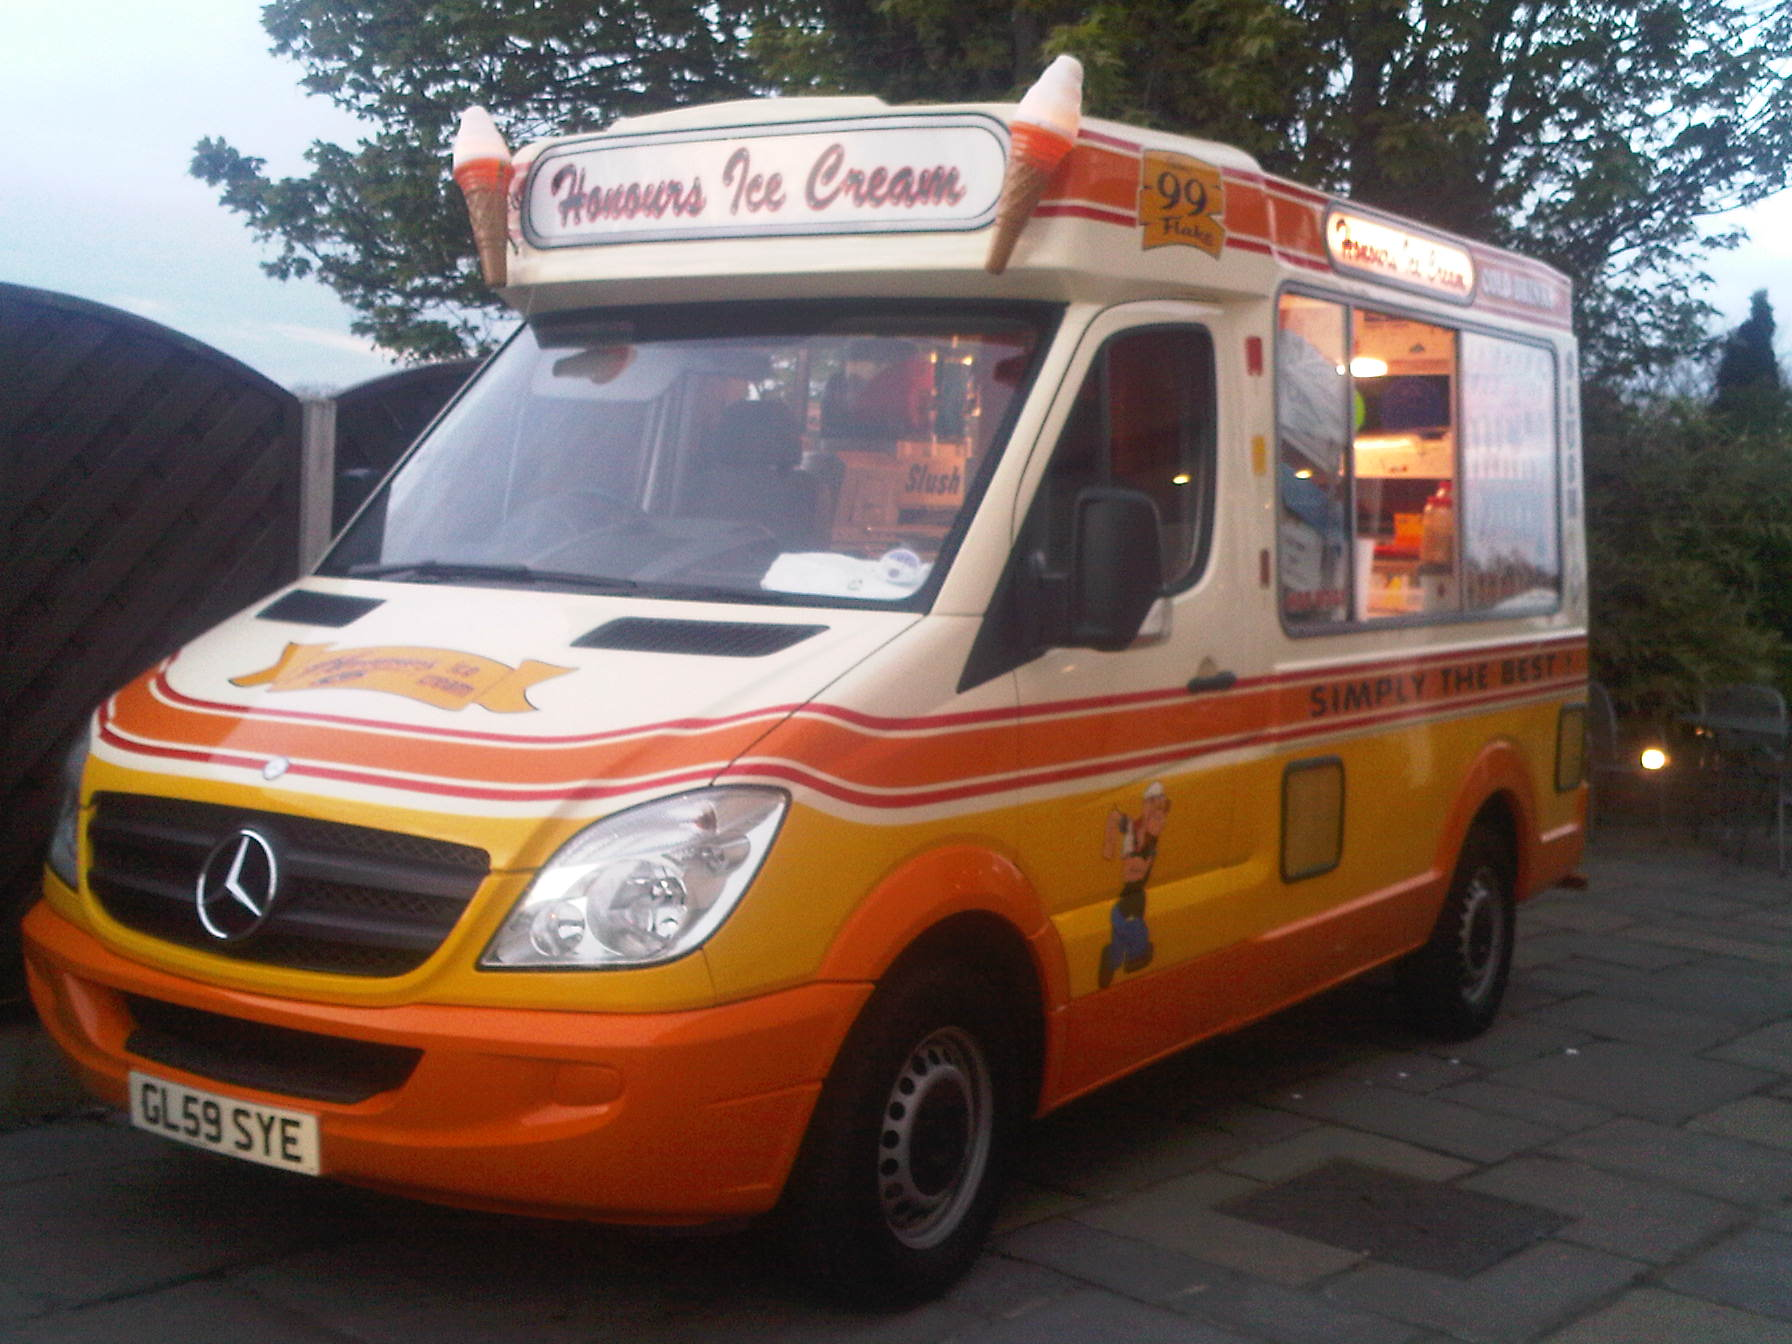 Whitby Morrison ice cream van at wedding party